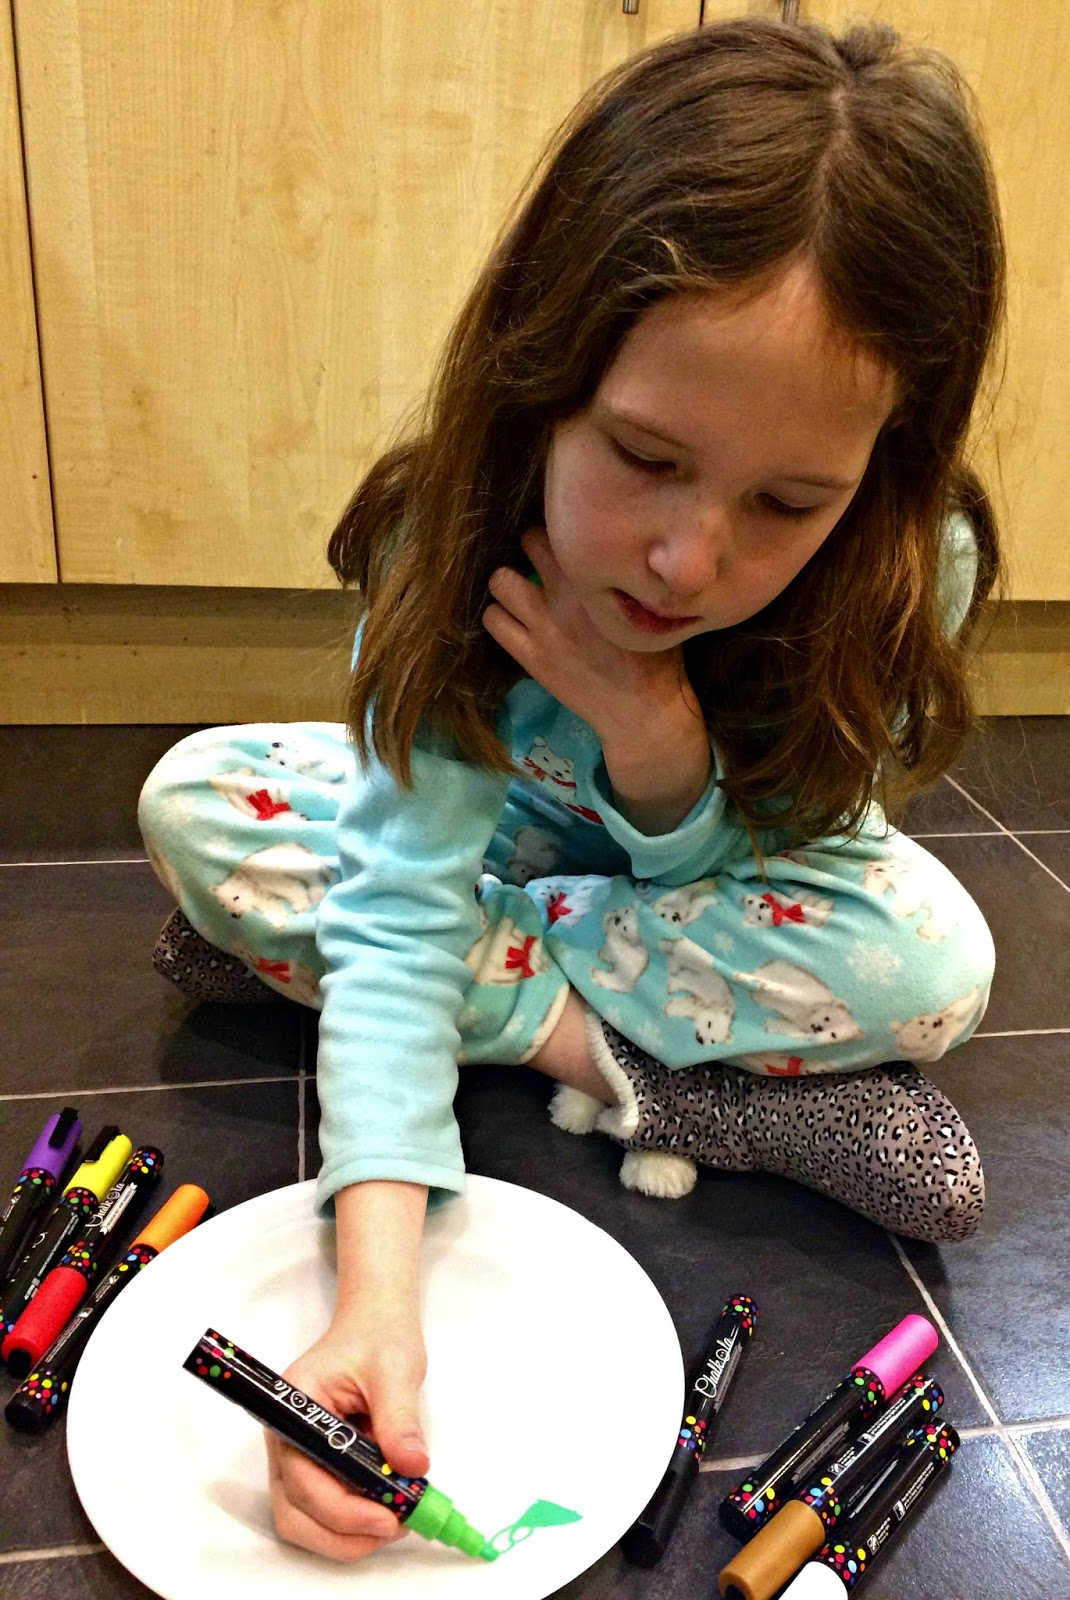 Caitlin decorating a plate with a Chalkola marker